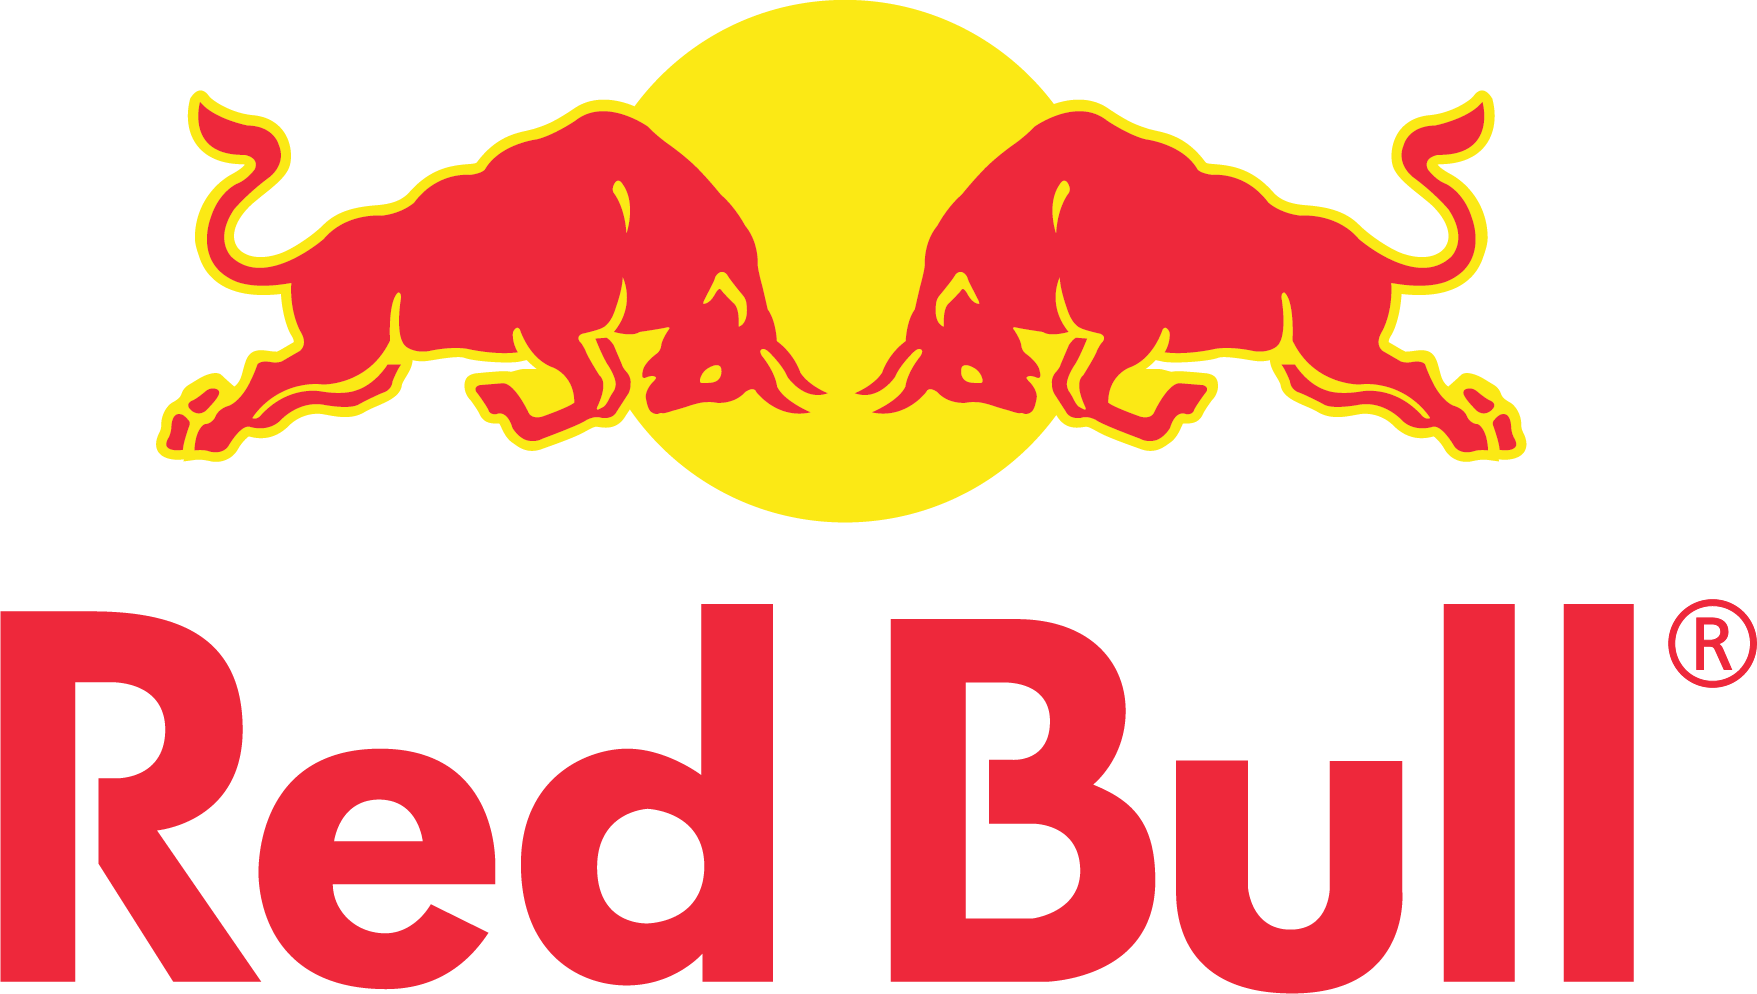 red-bull-seeklogo.com [Converted].png